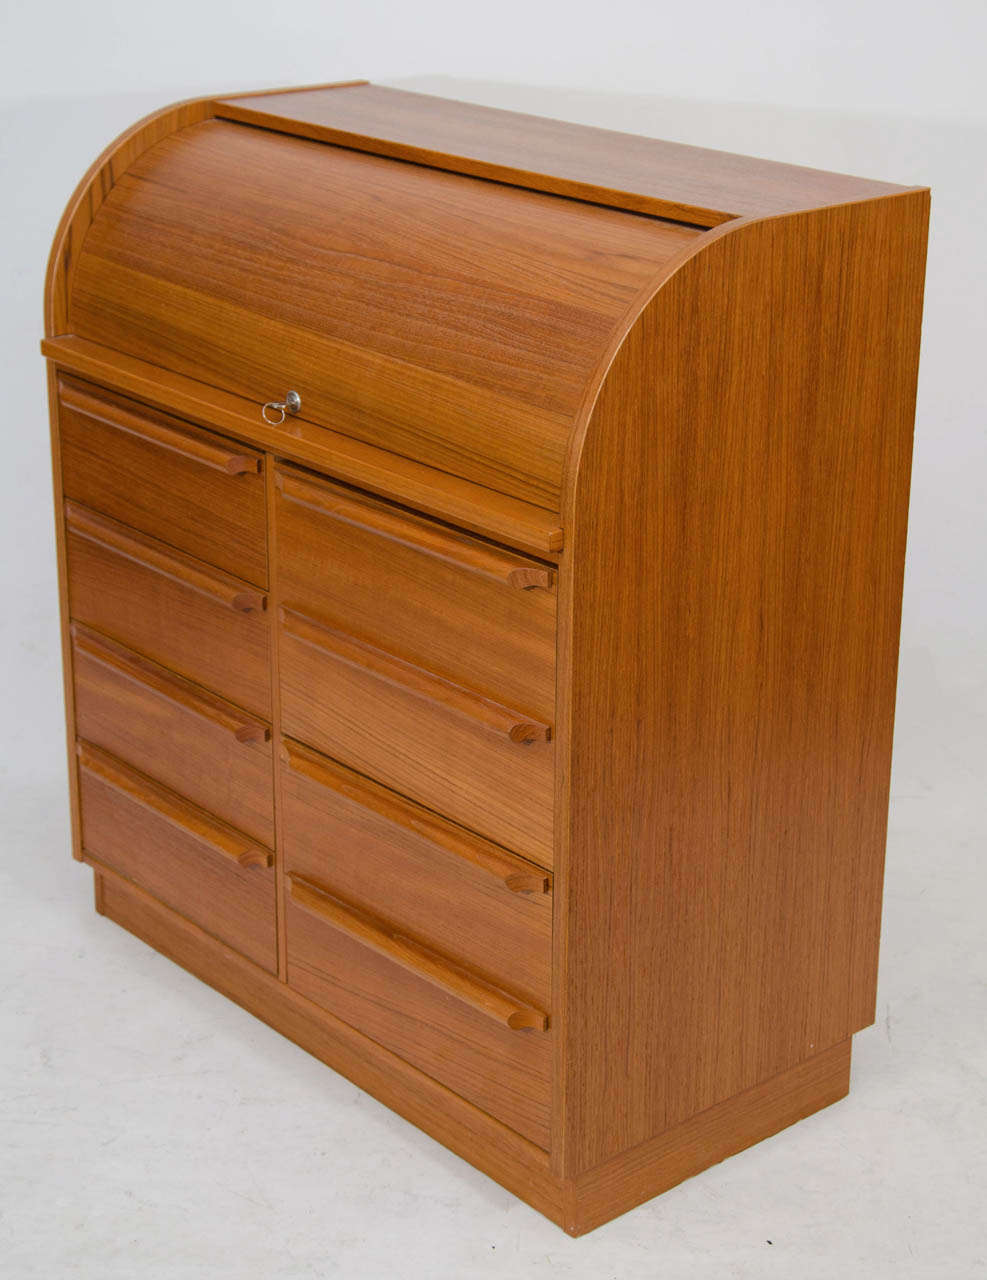 Attractive Modern Roll Top Secretary With A Pull Out Desk Surface And Small Drawers